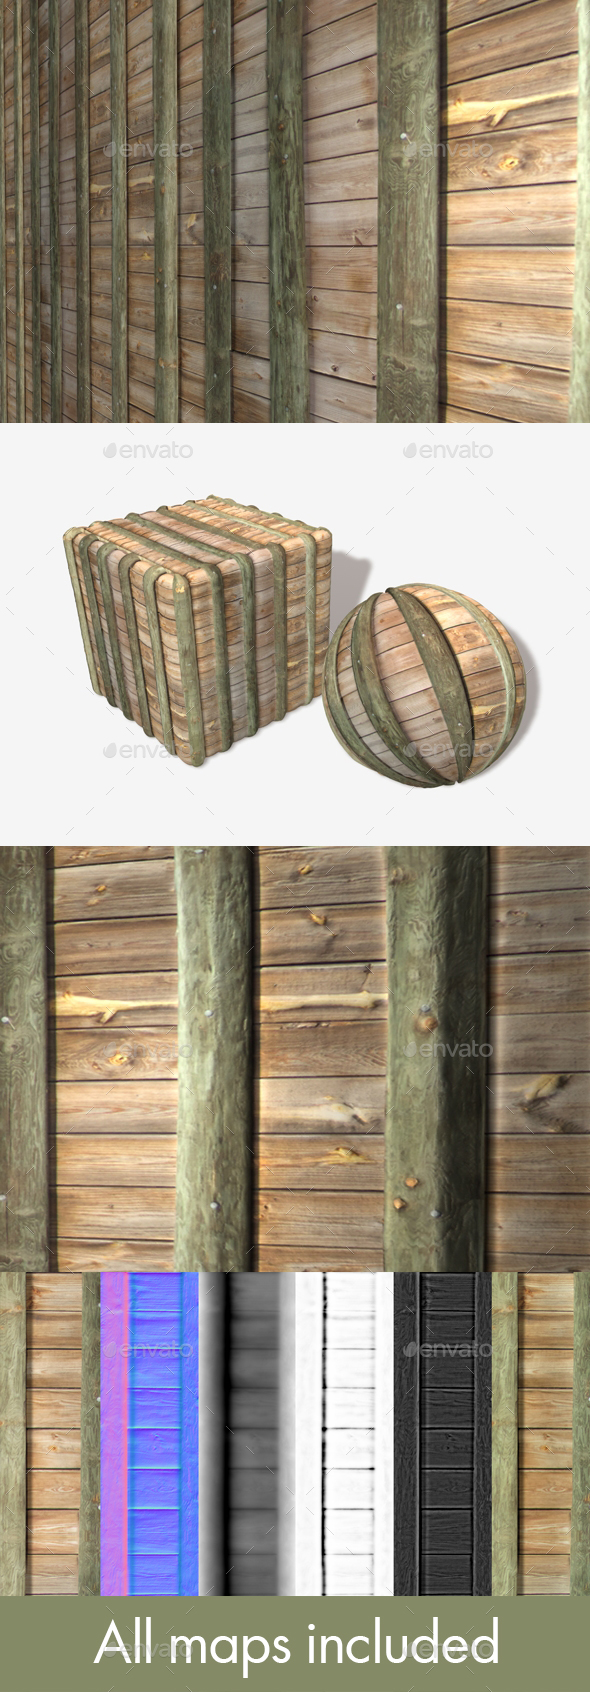 Wooden Barrier Wall Seamless Texture - 3DOcean Item for Sale